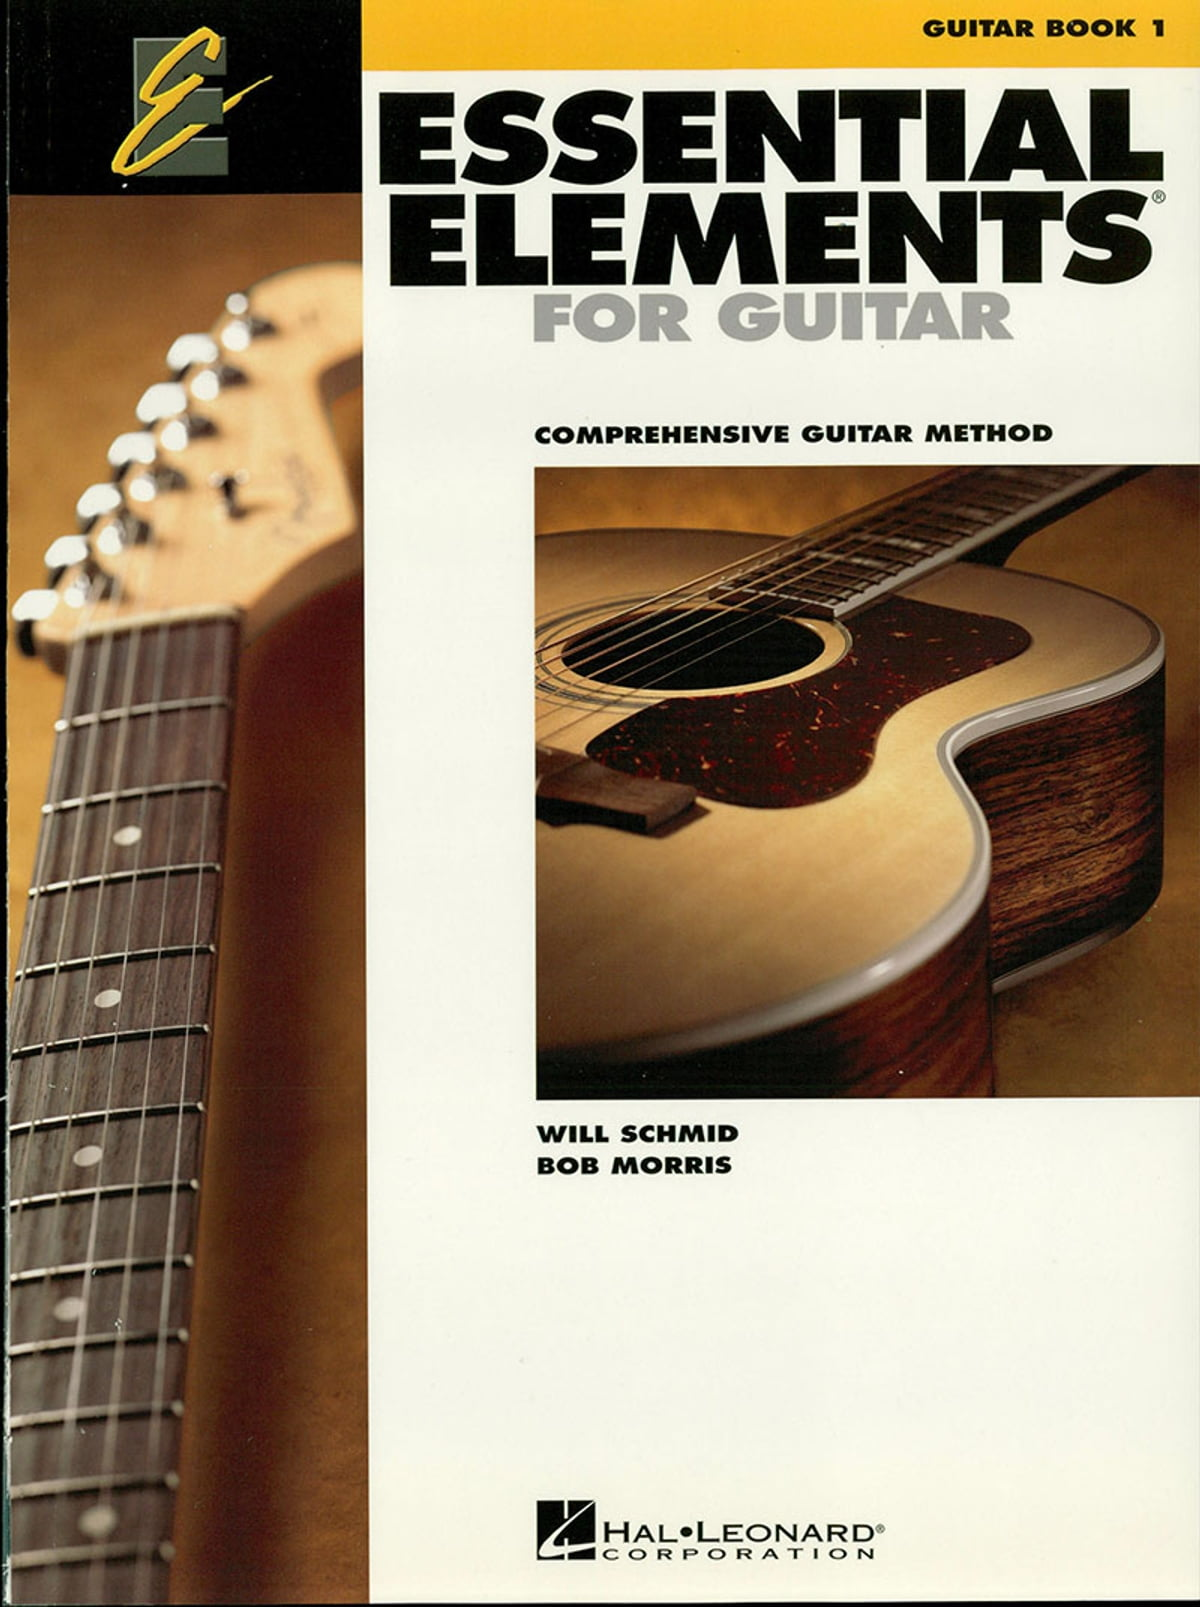 Essential Elements For Guitar Book 1 Music Instruction Ebook By Will Schmid 9781476826264 Rakuten Kobo Philippines